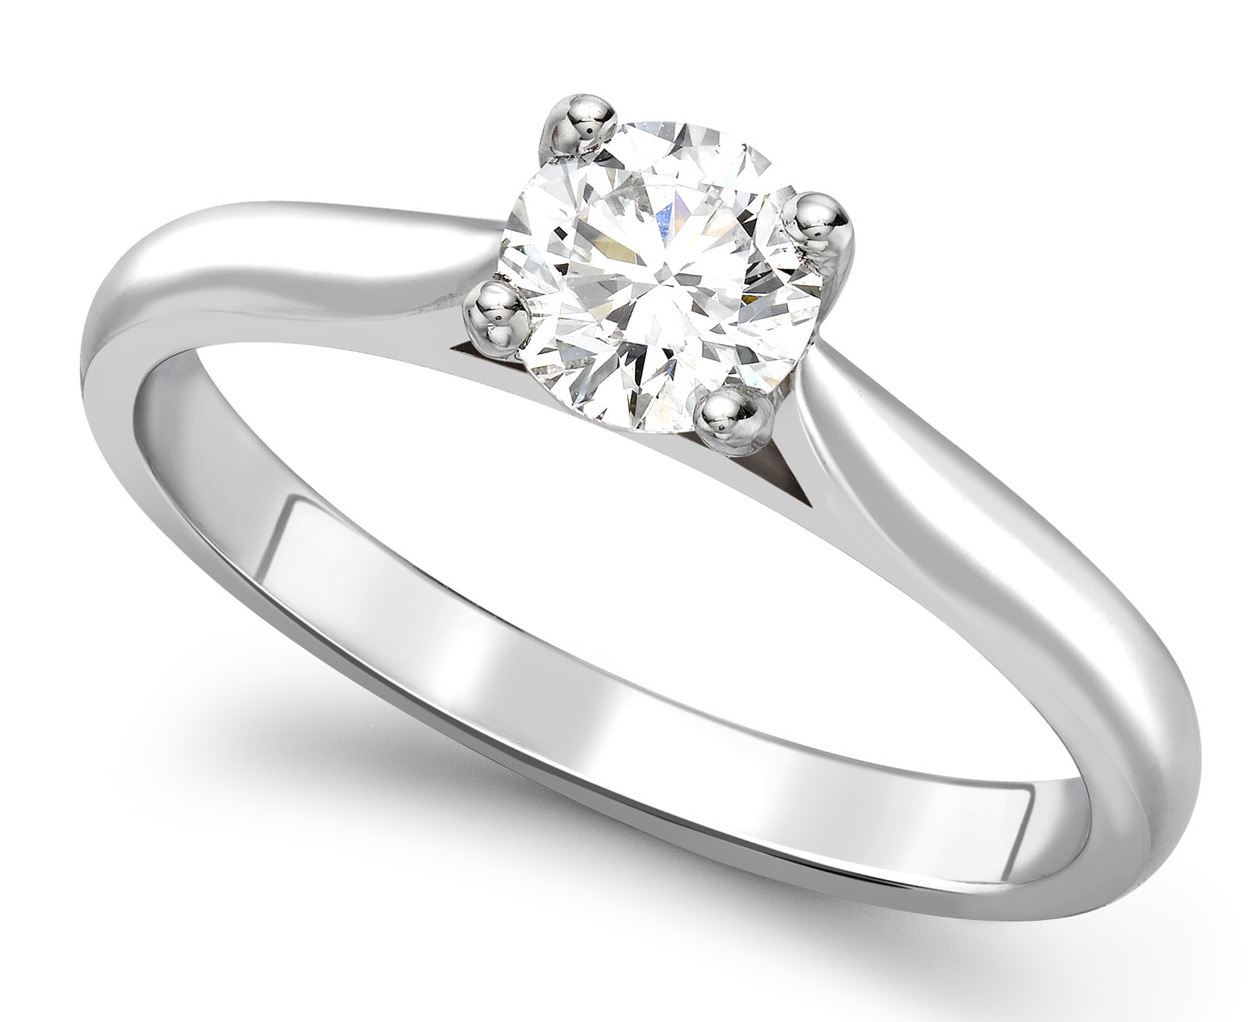 Round Four Claw Platinum Engagement Ring GRC680PLT Main Image